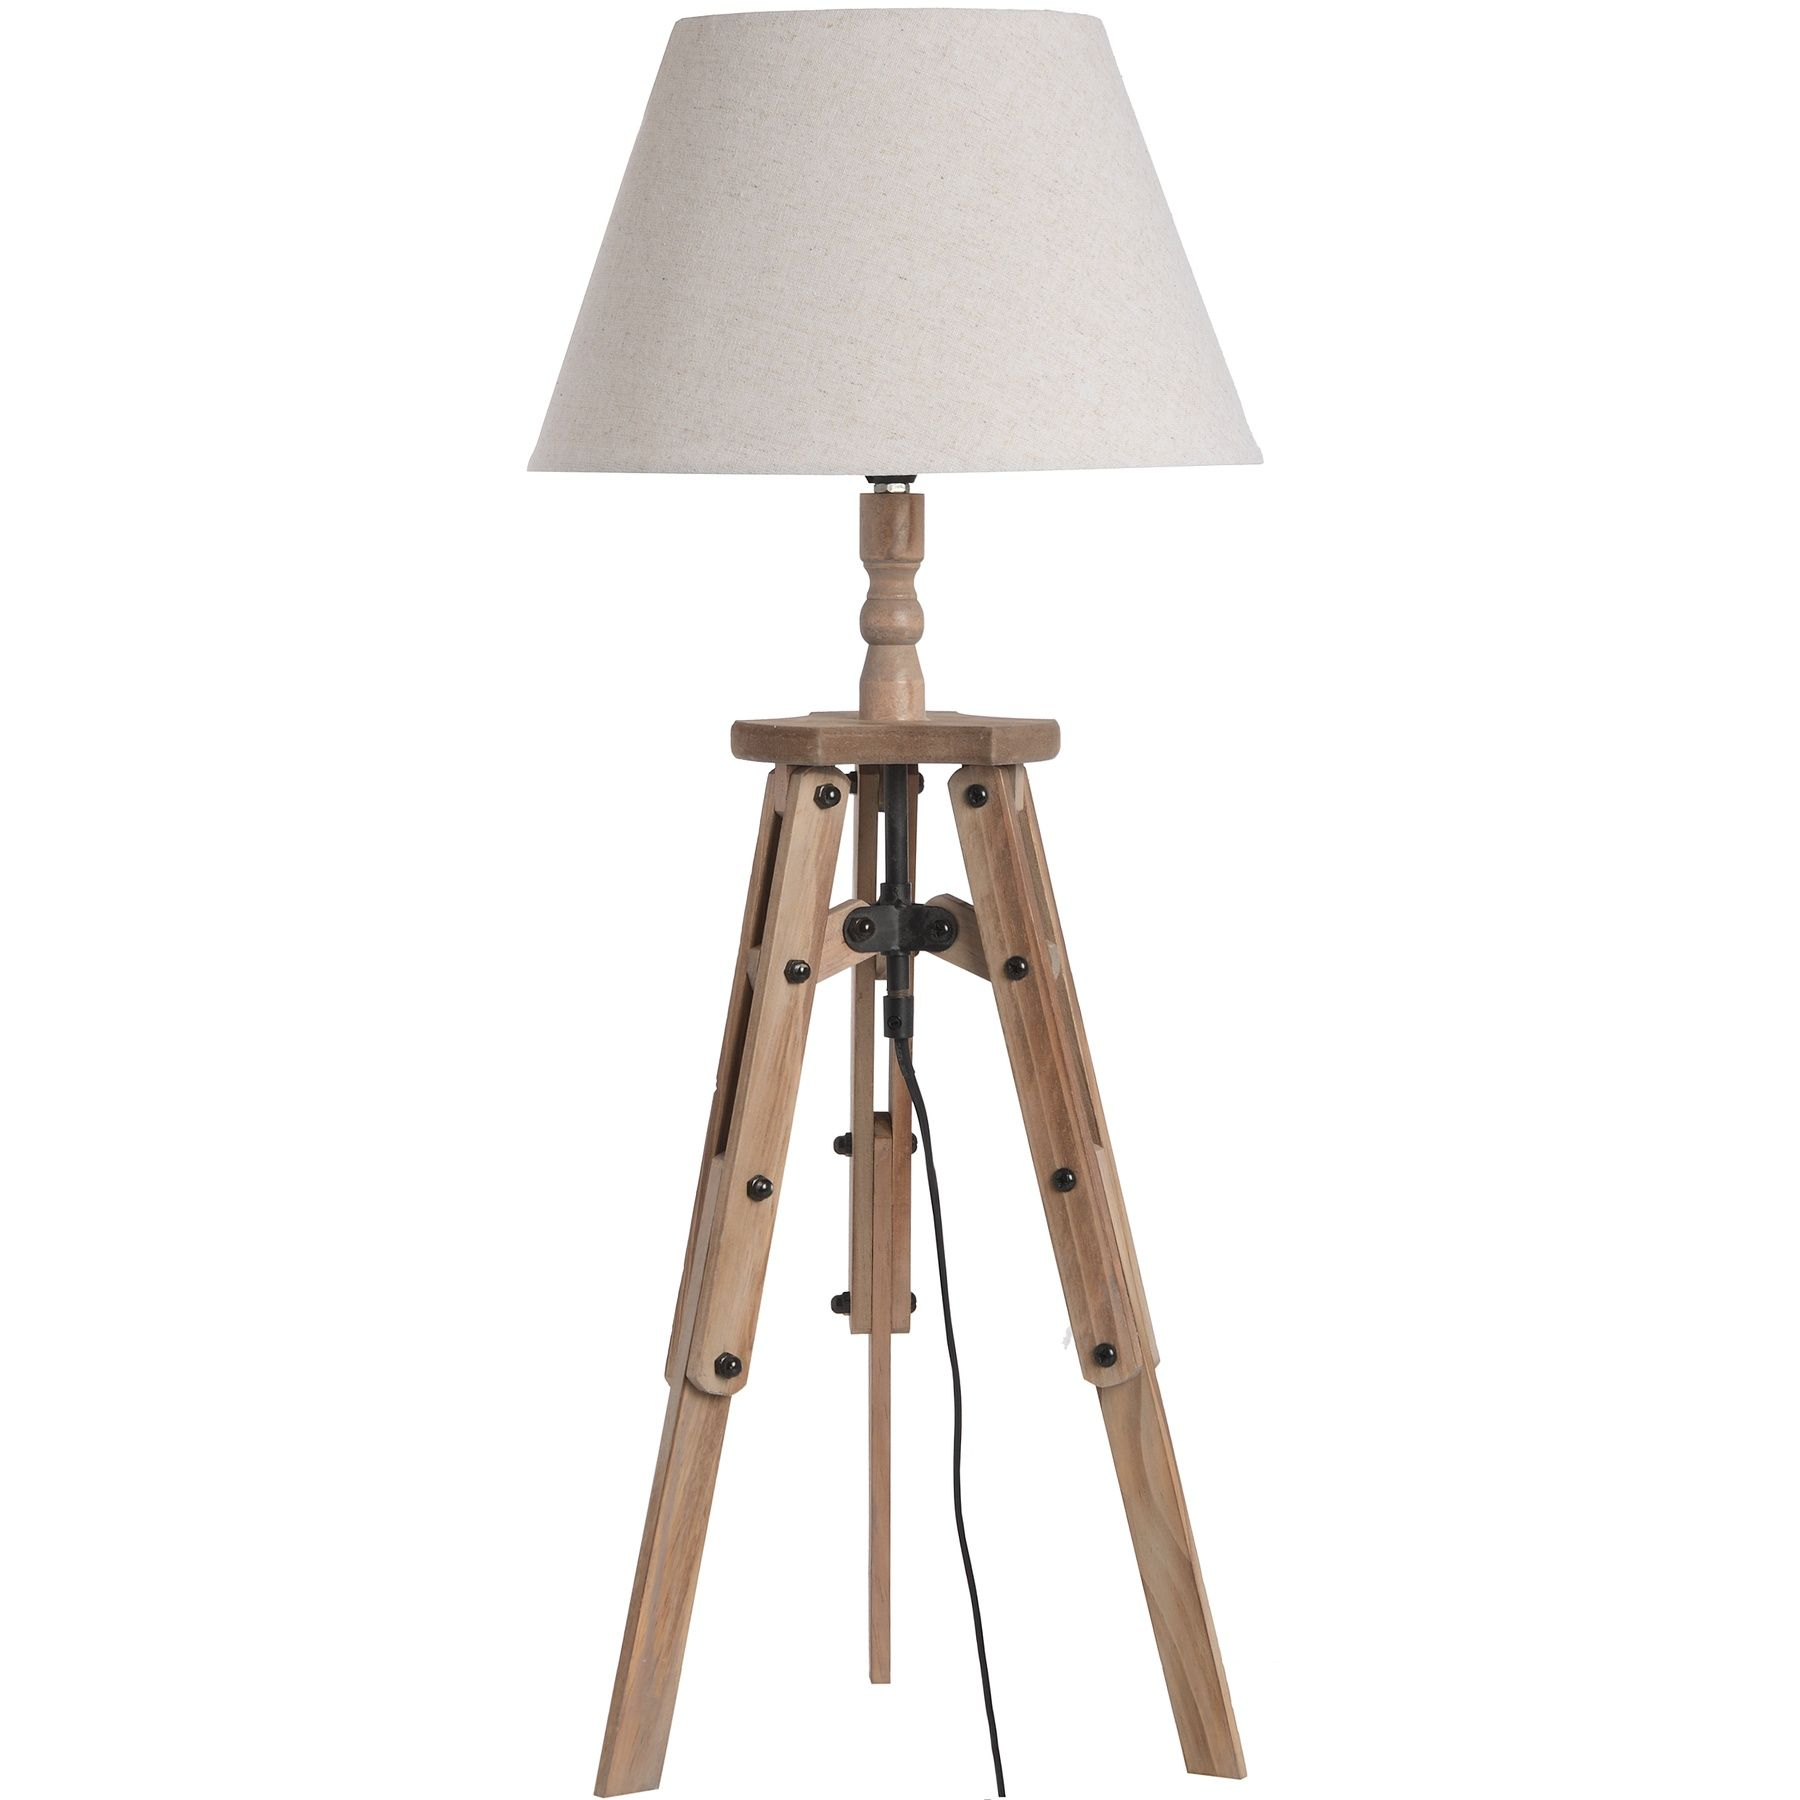 Wooden Tripod Table Lamp Wooden Table Lamps Tripod Table Lamp